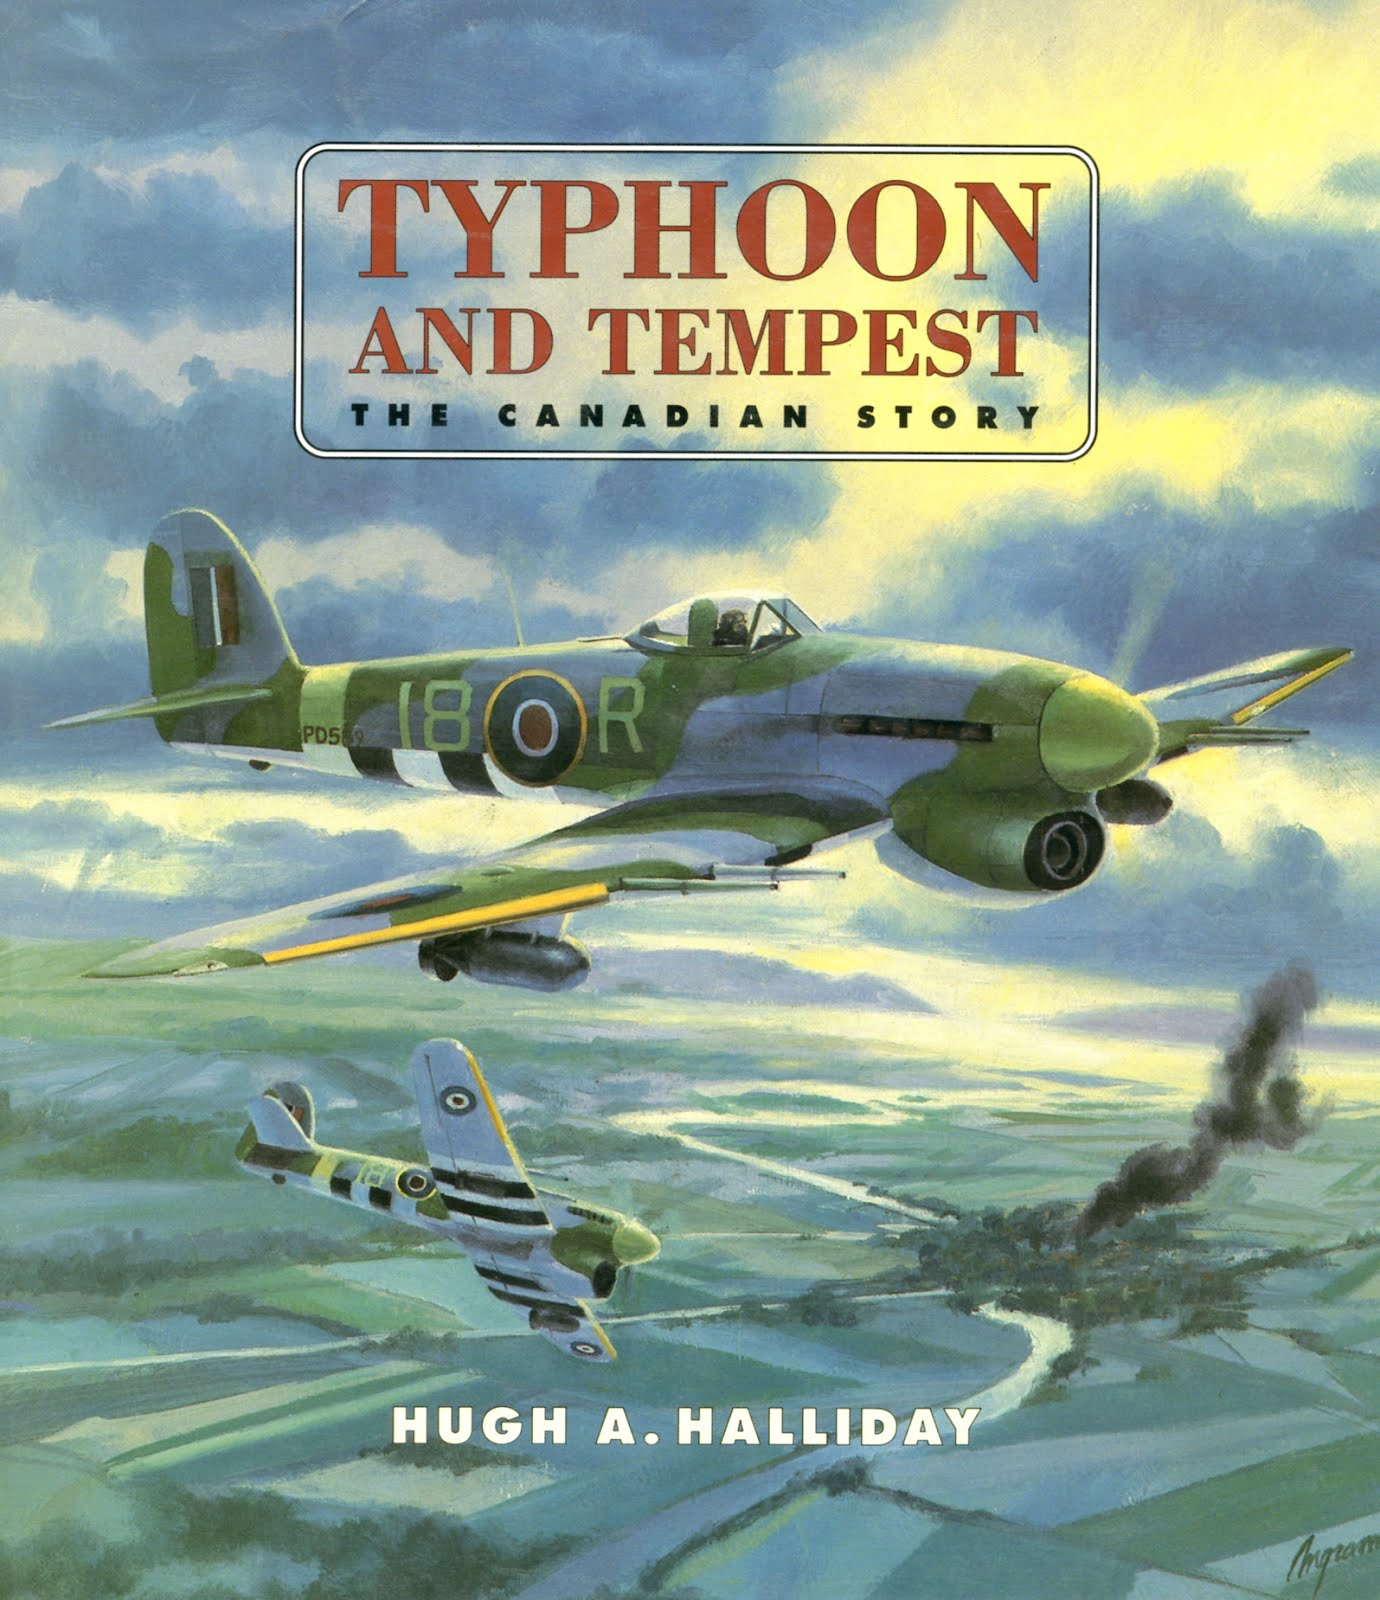 Typhoon and Tempest